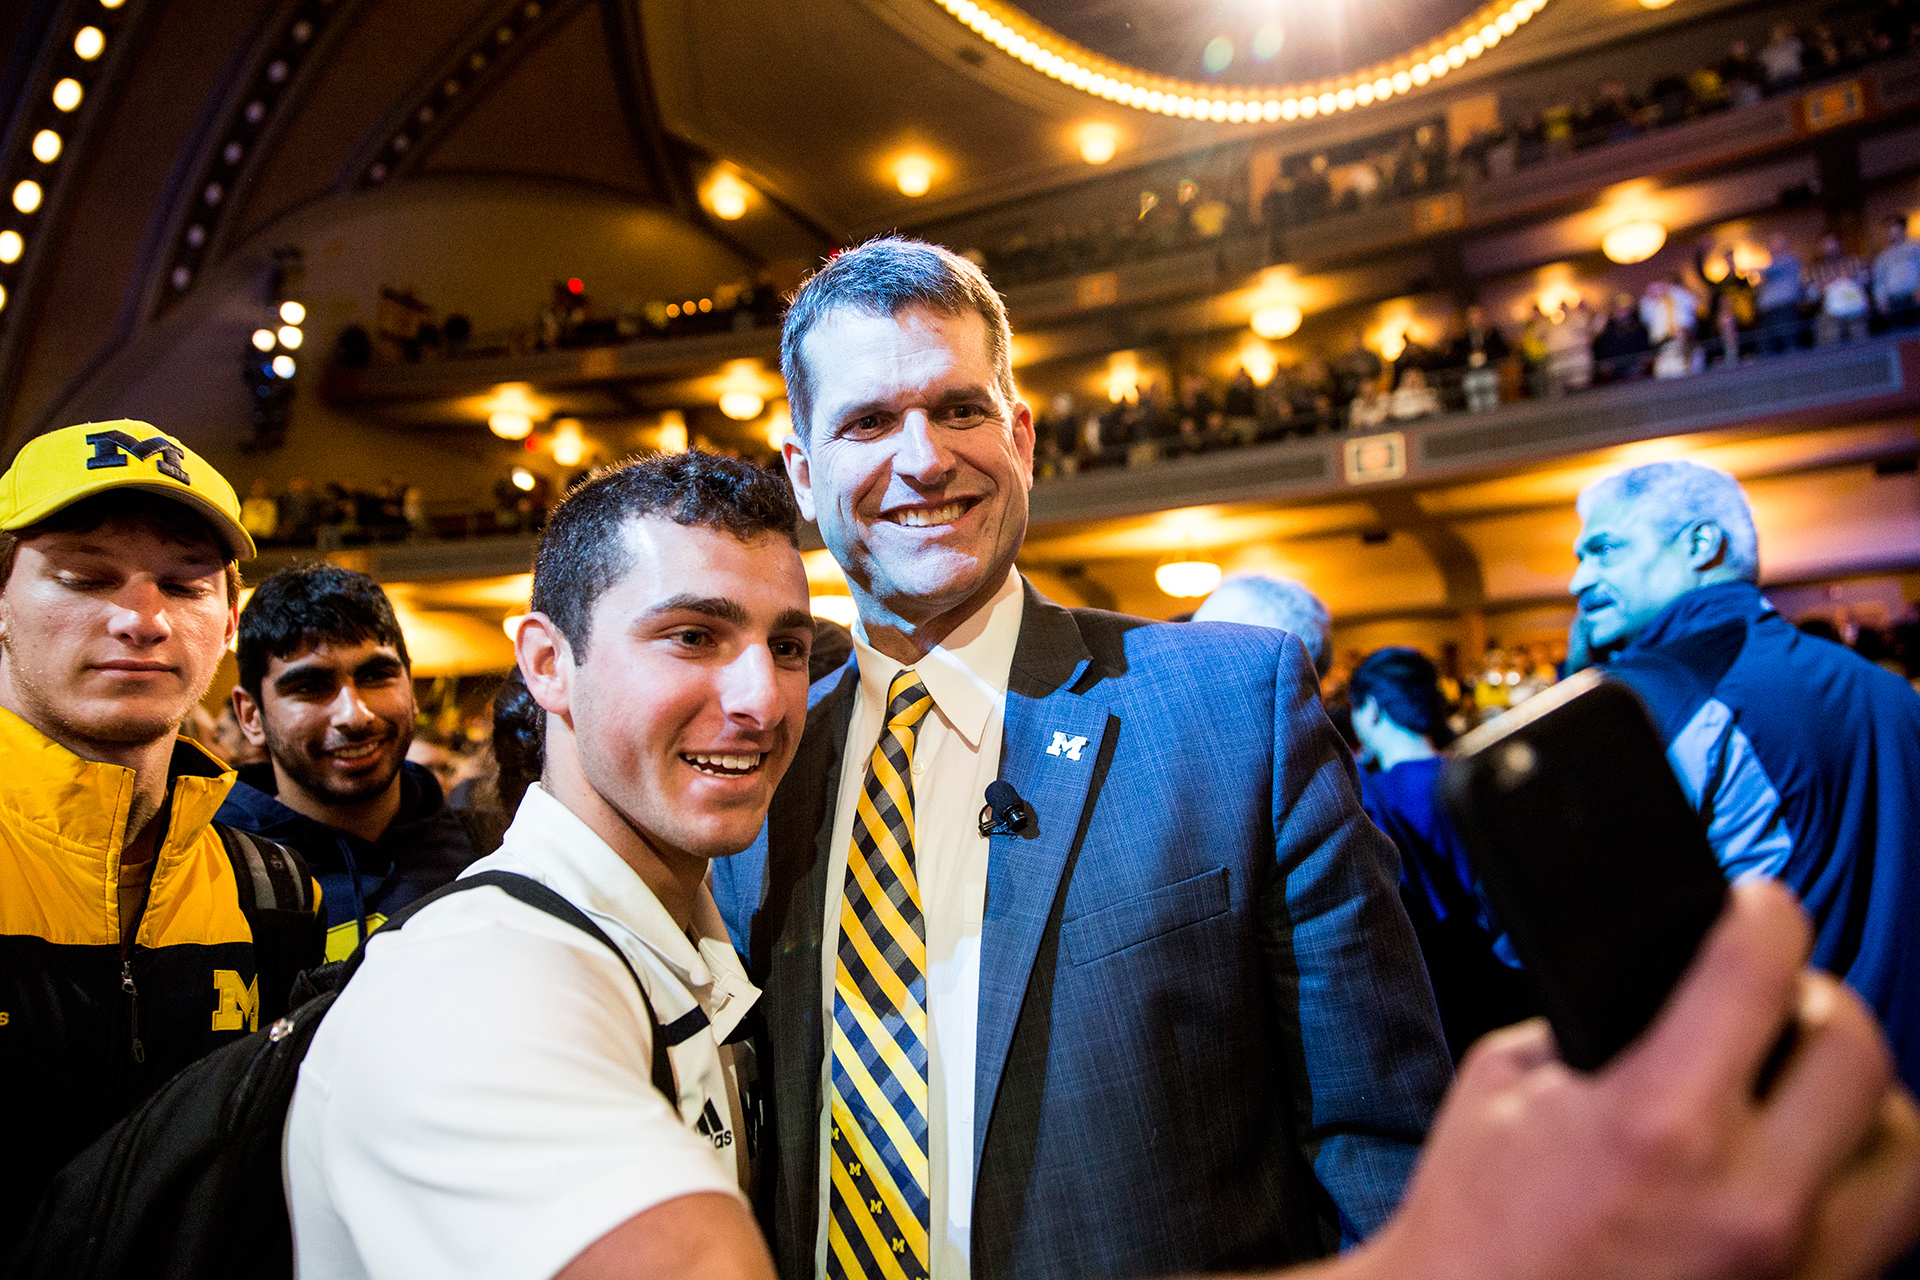 Coach Harbaugh poses for a selfie with a supporter.